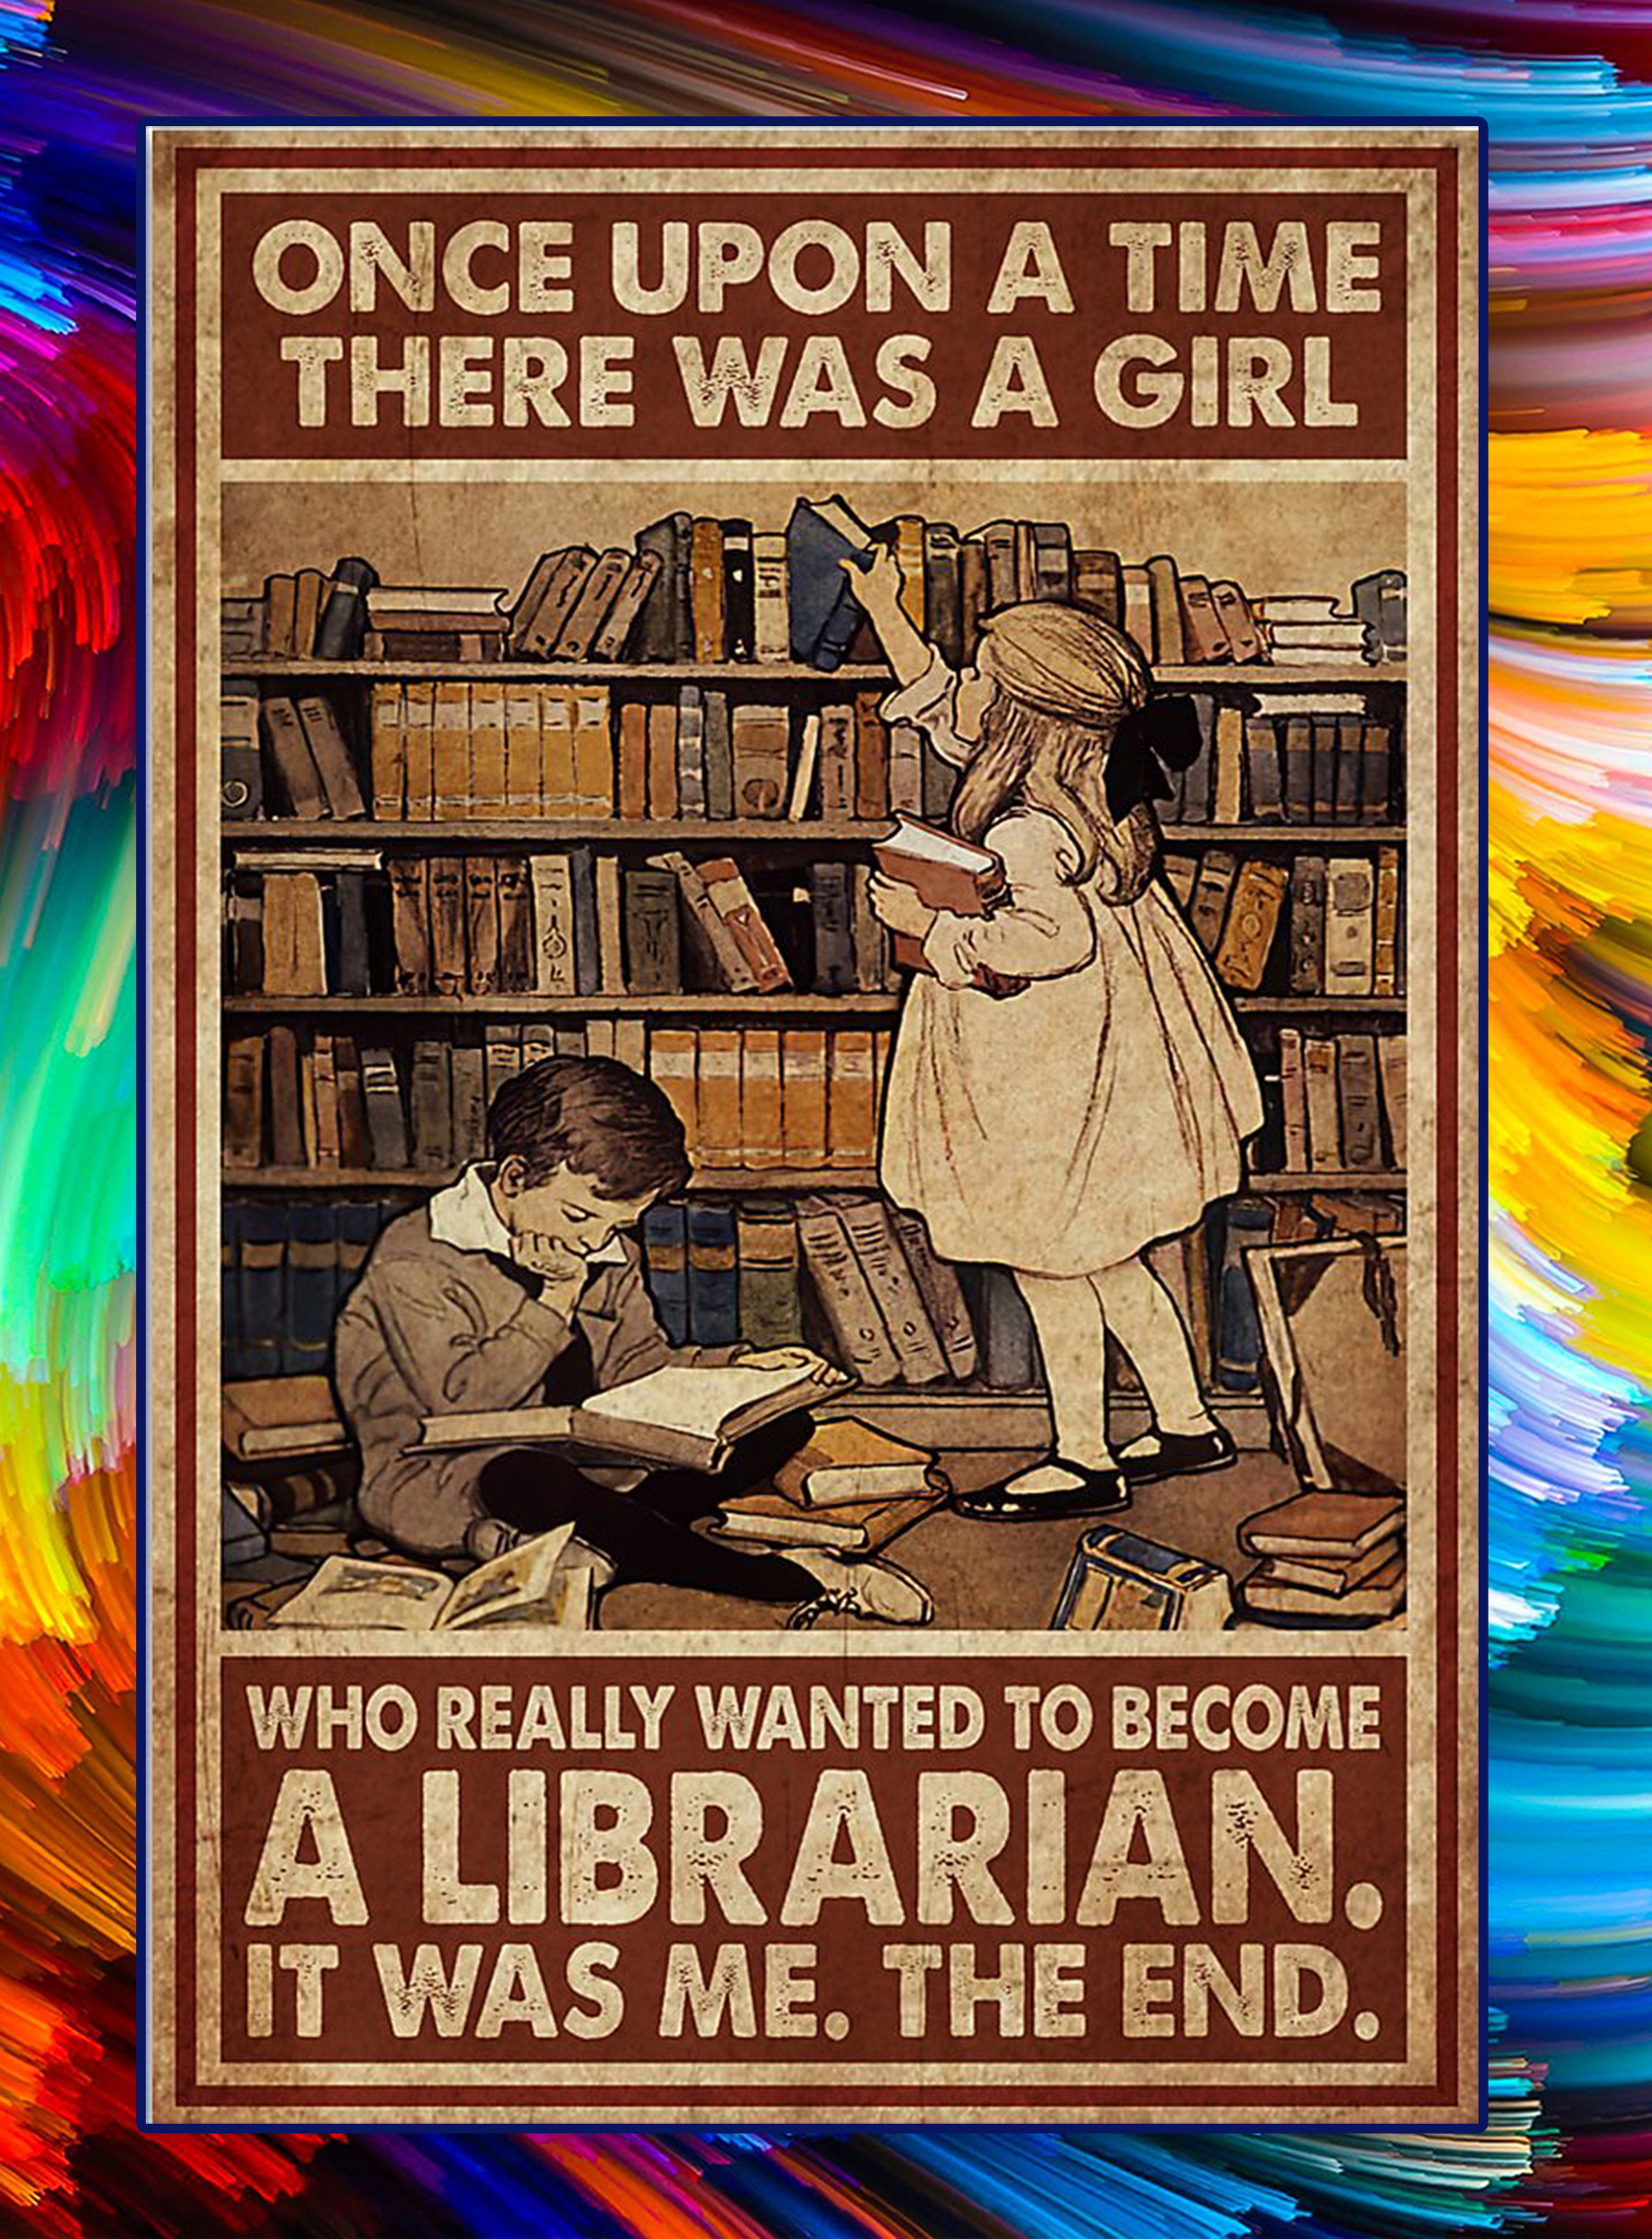 Once upon a time there was a girl who really wanted to become a librarian poster - A2